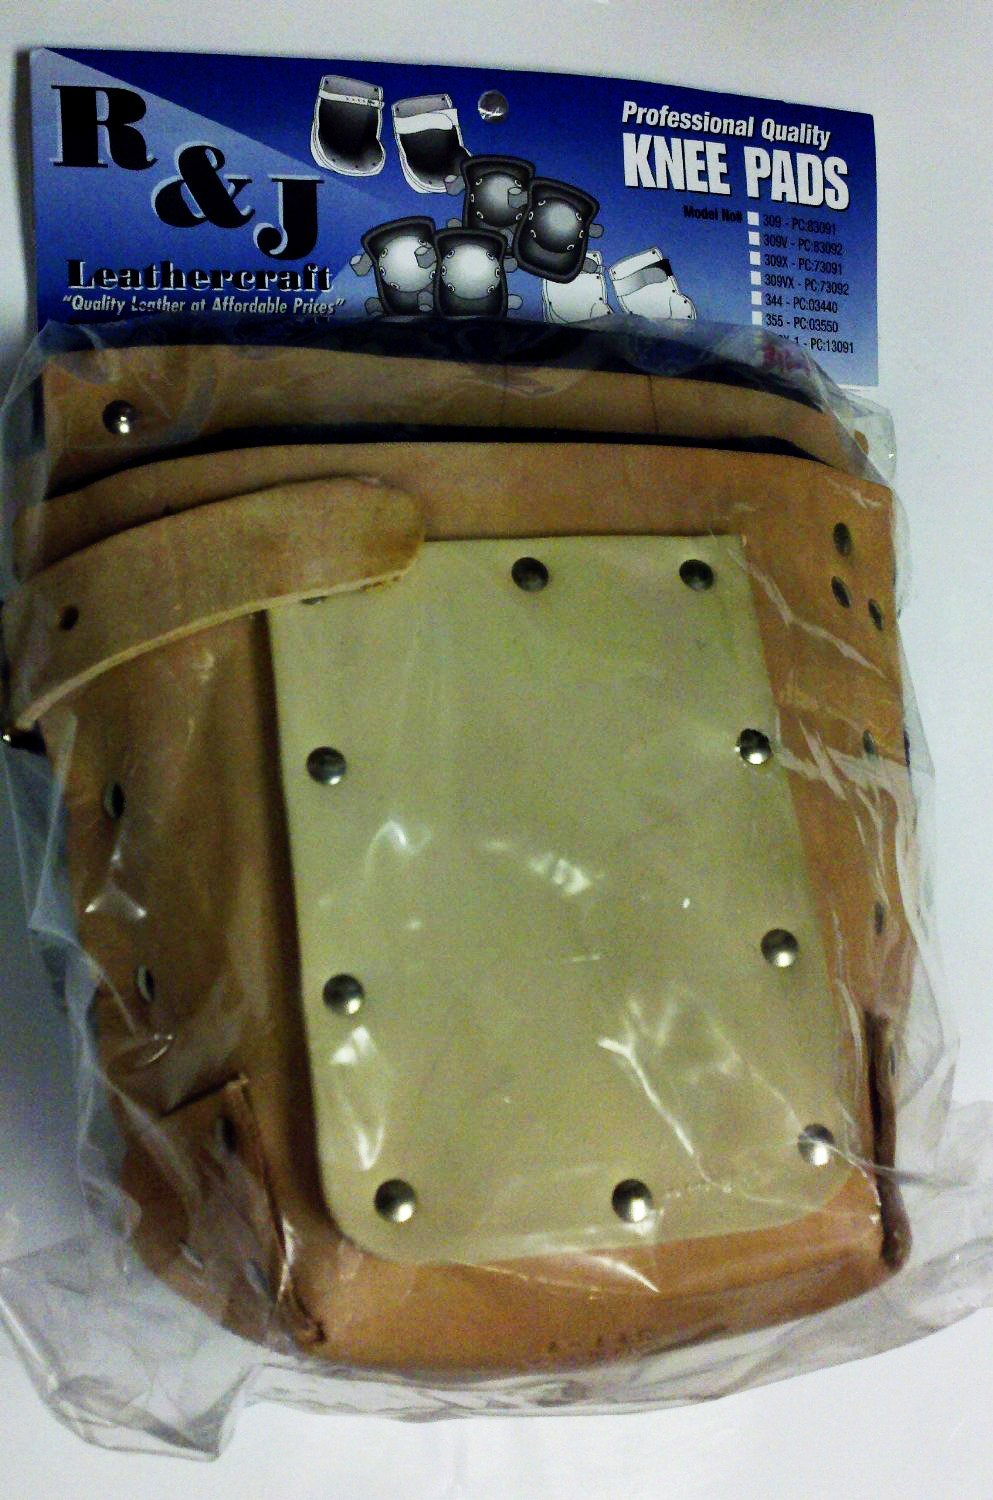 R&J Leathercraft, 311-1, Extra Heavy Duty Professional Knee Pads w/ Neolite Sole, 1'' wide Leather Strap, Made in USA***** by R & J Leathercraft